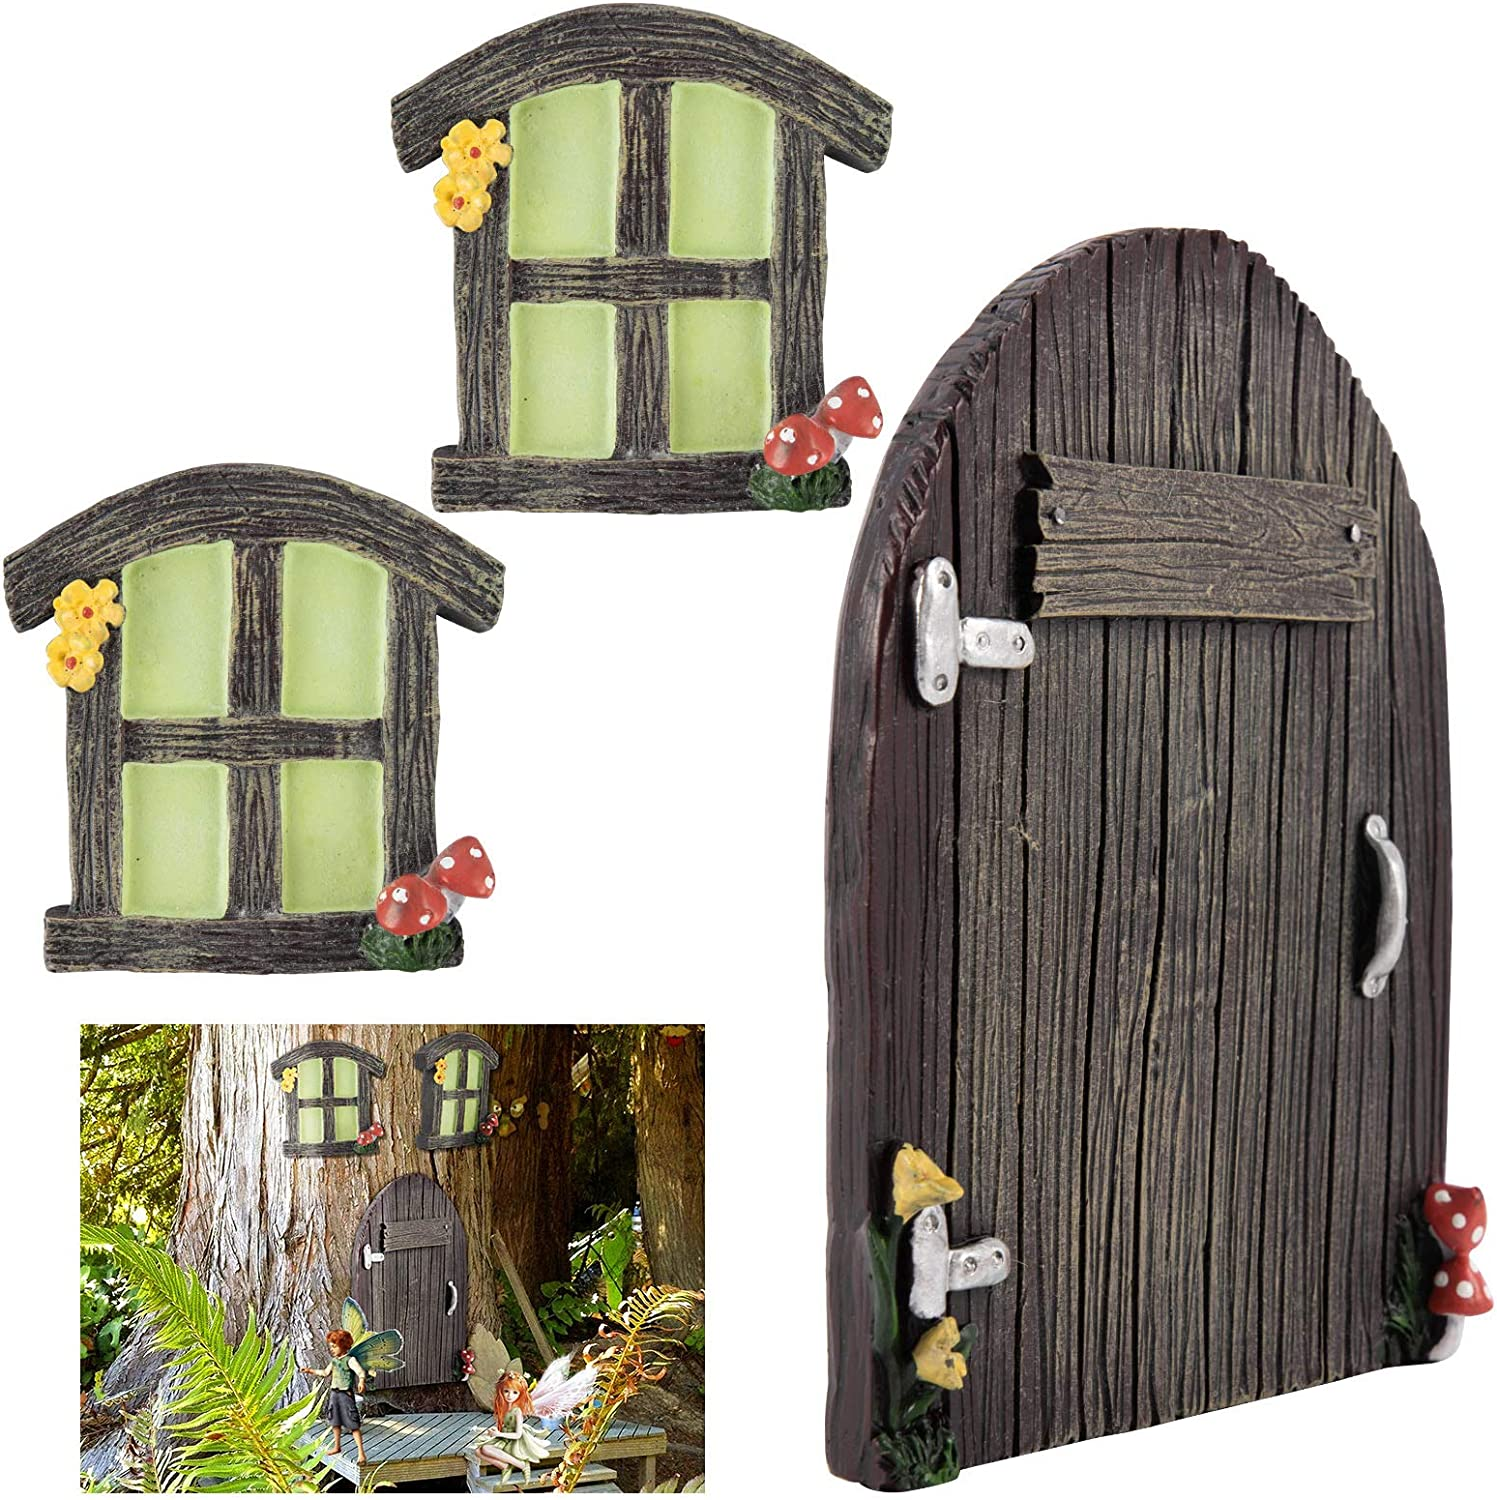 3pcs Baltimore Mall Miniature Fairy Home Windows and in Finally popular brand Glowing Dark Door- The